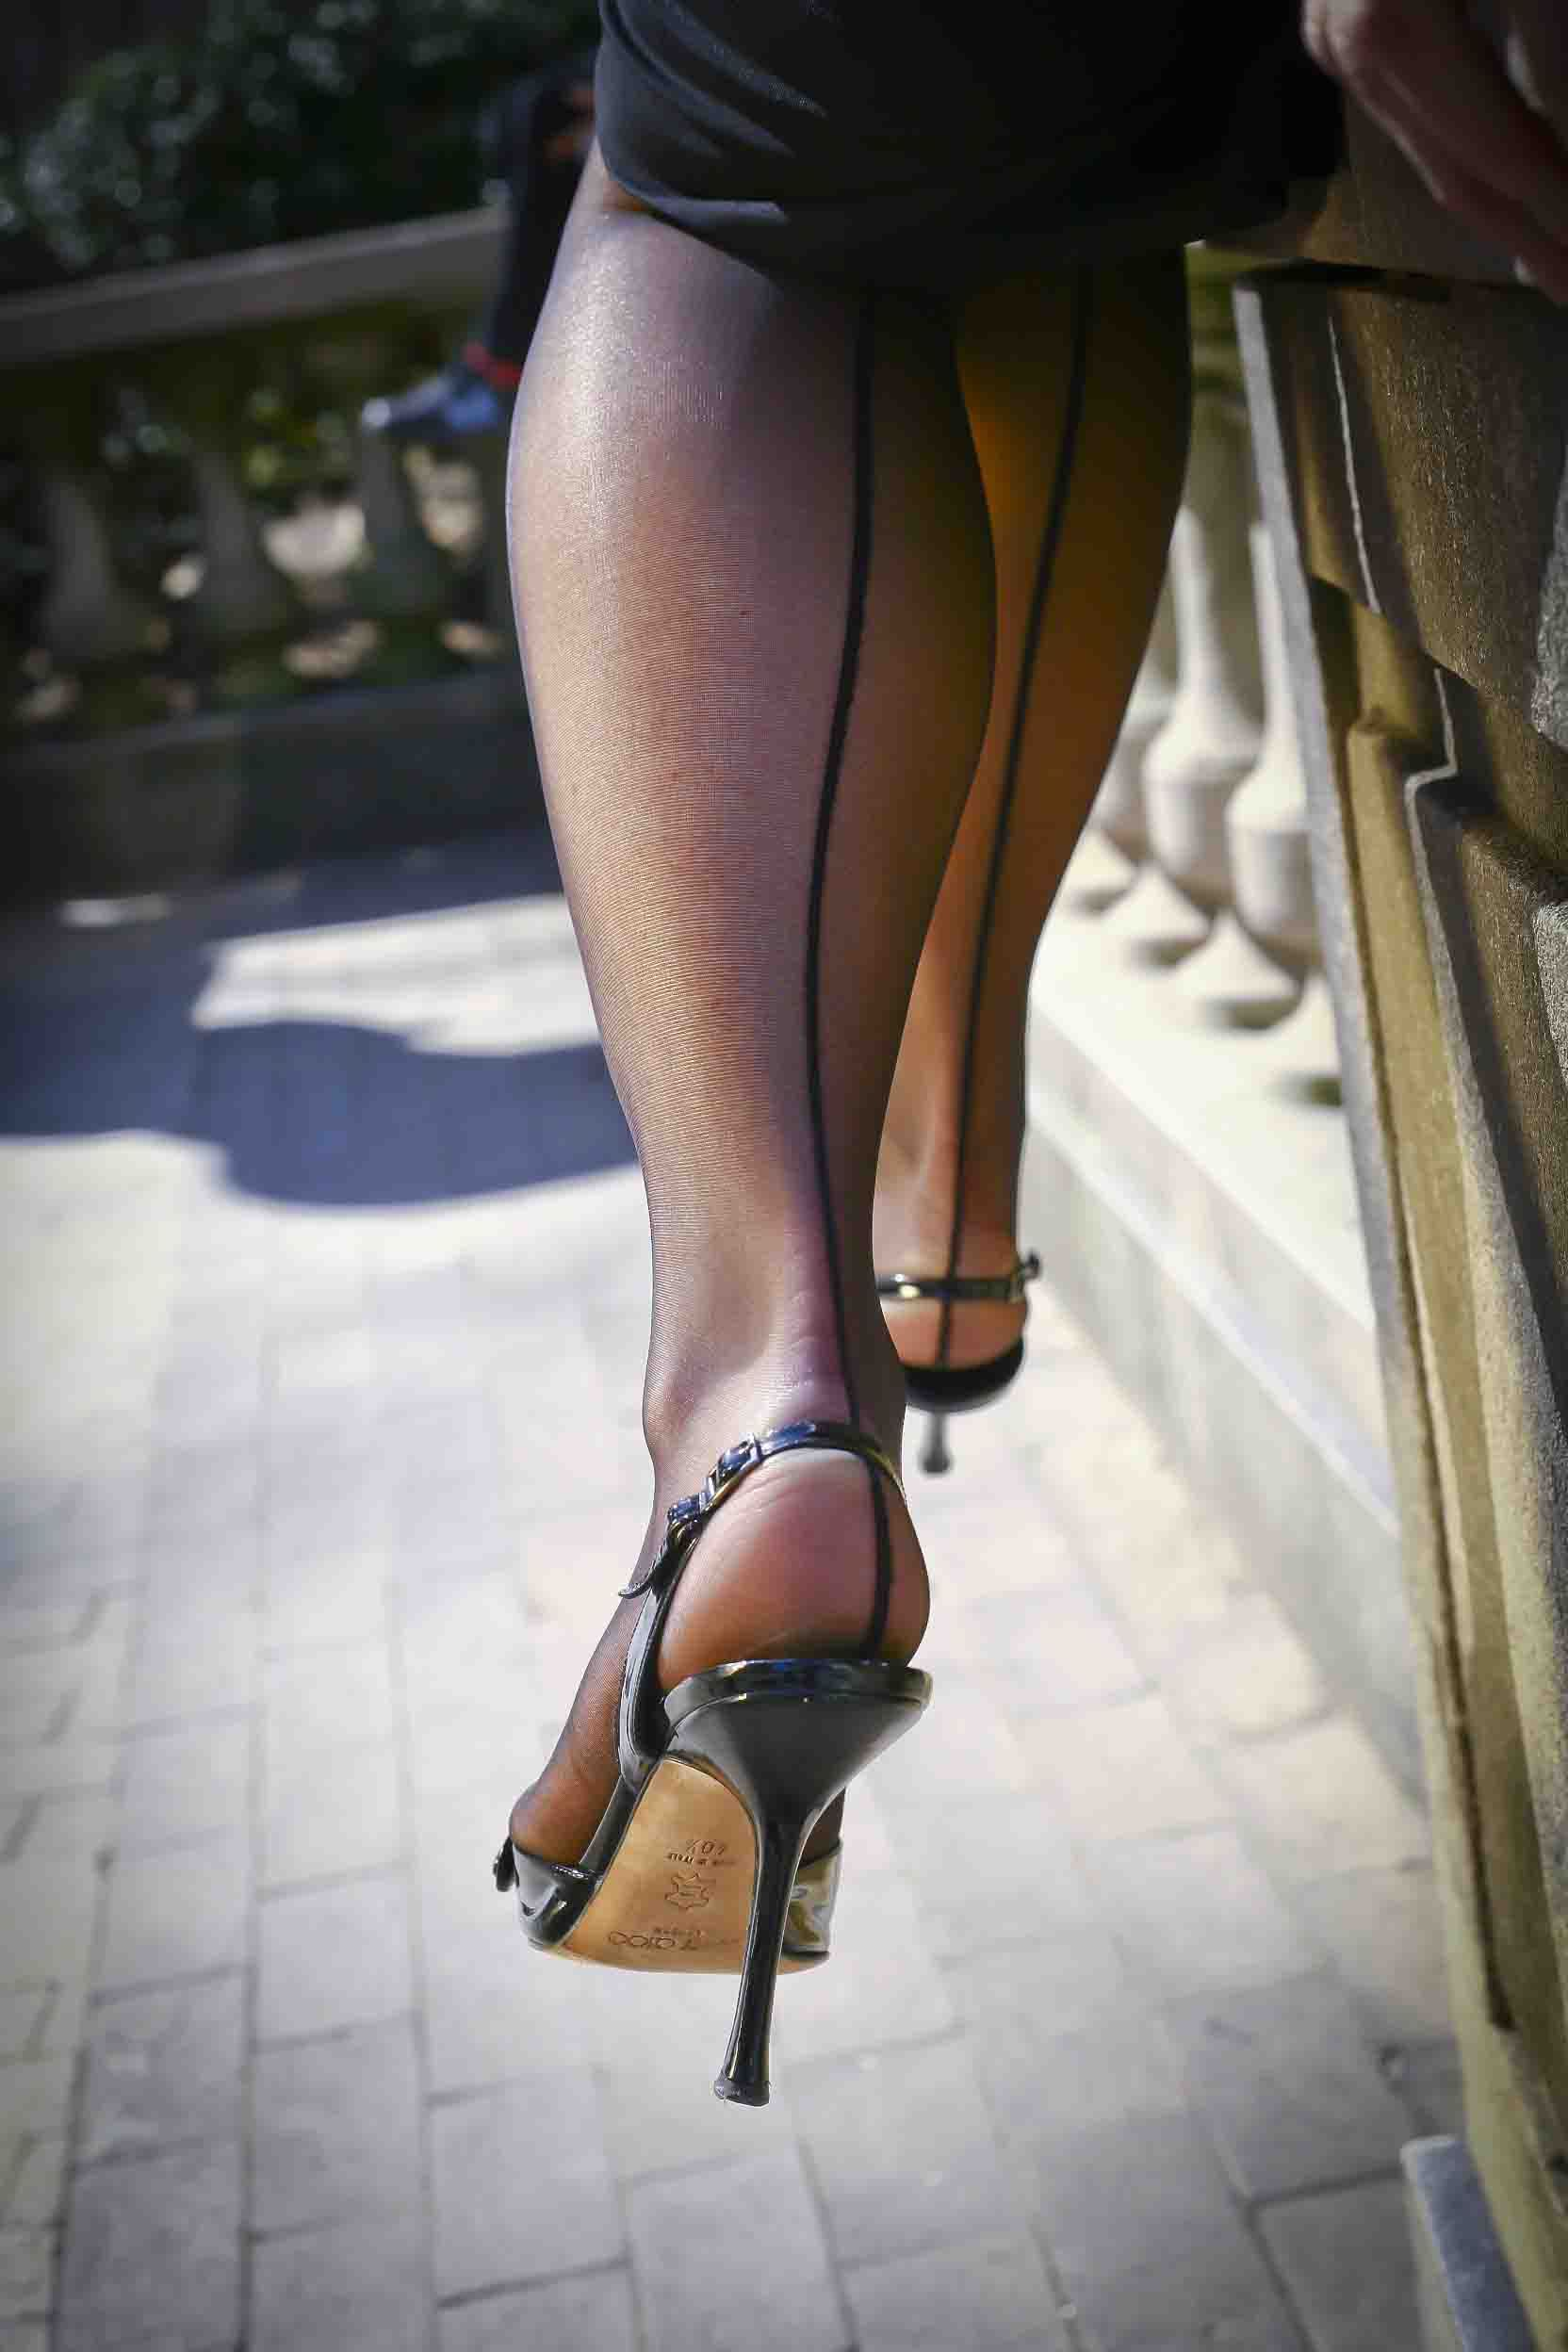 Shaved hose stiletto heels